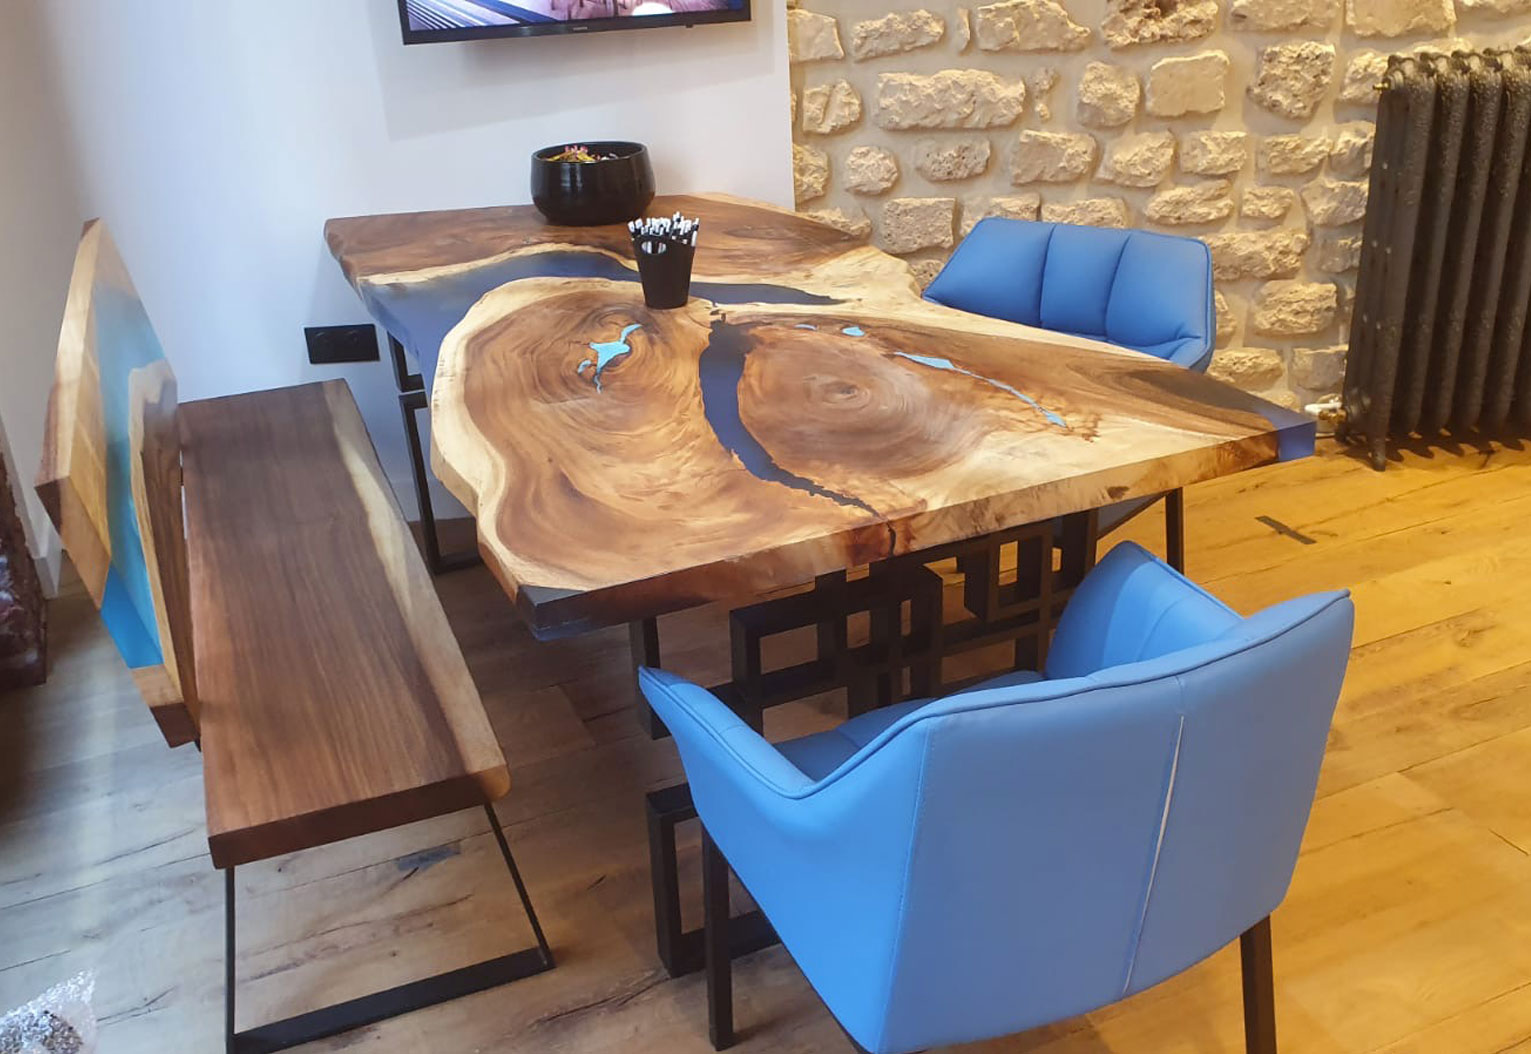 Blue River Paris Mobilier En Bois Et Résine Epoxy En France